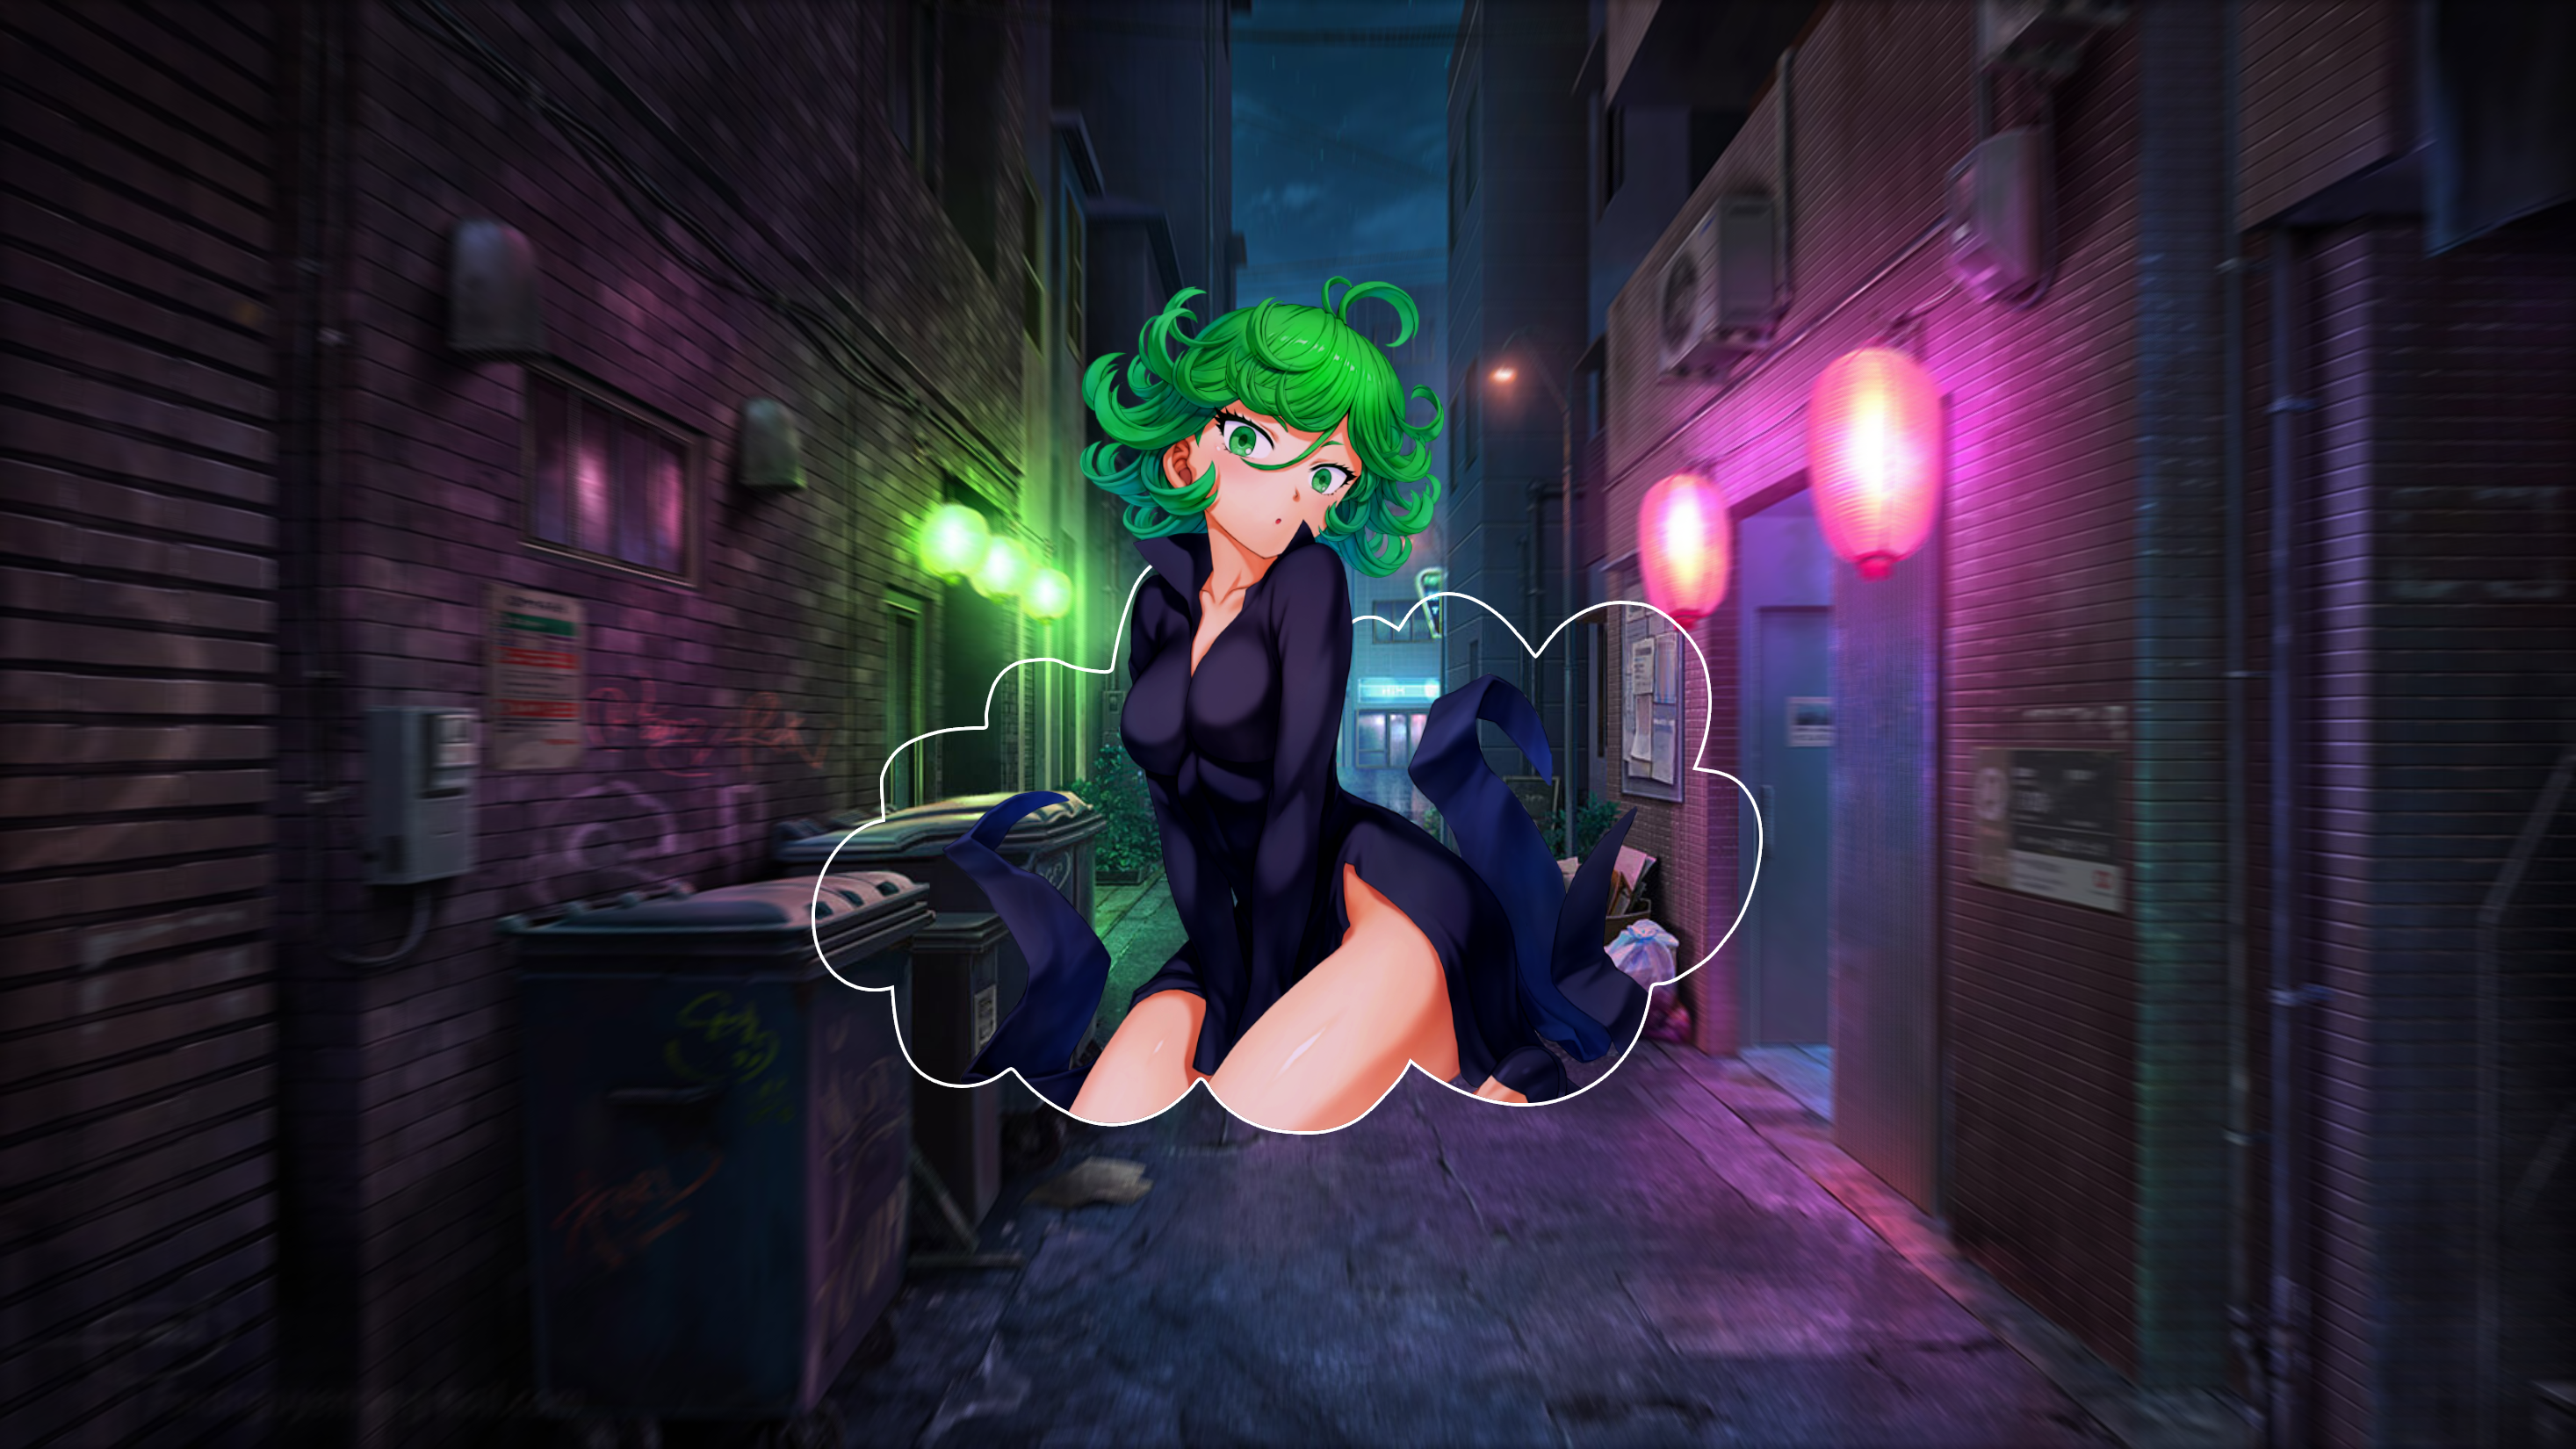 Anime Girls Tatsumaki Picture In Picture Digital One Punch Man 2933x1650